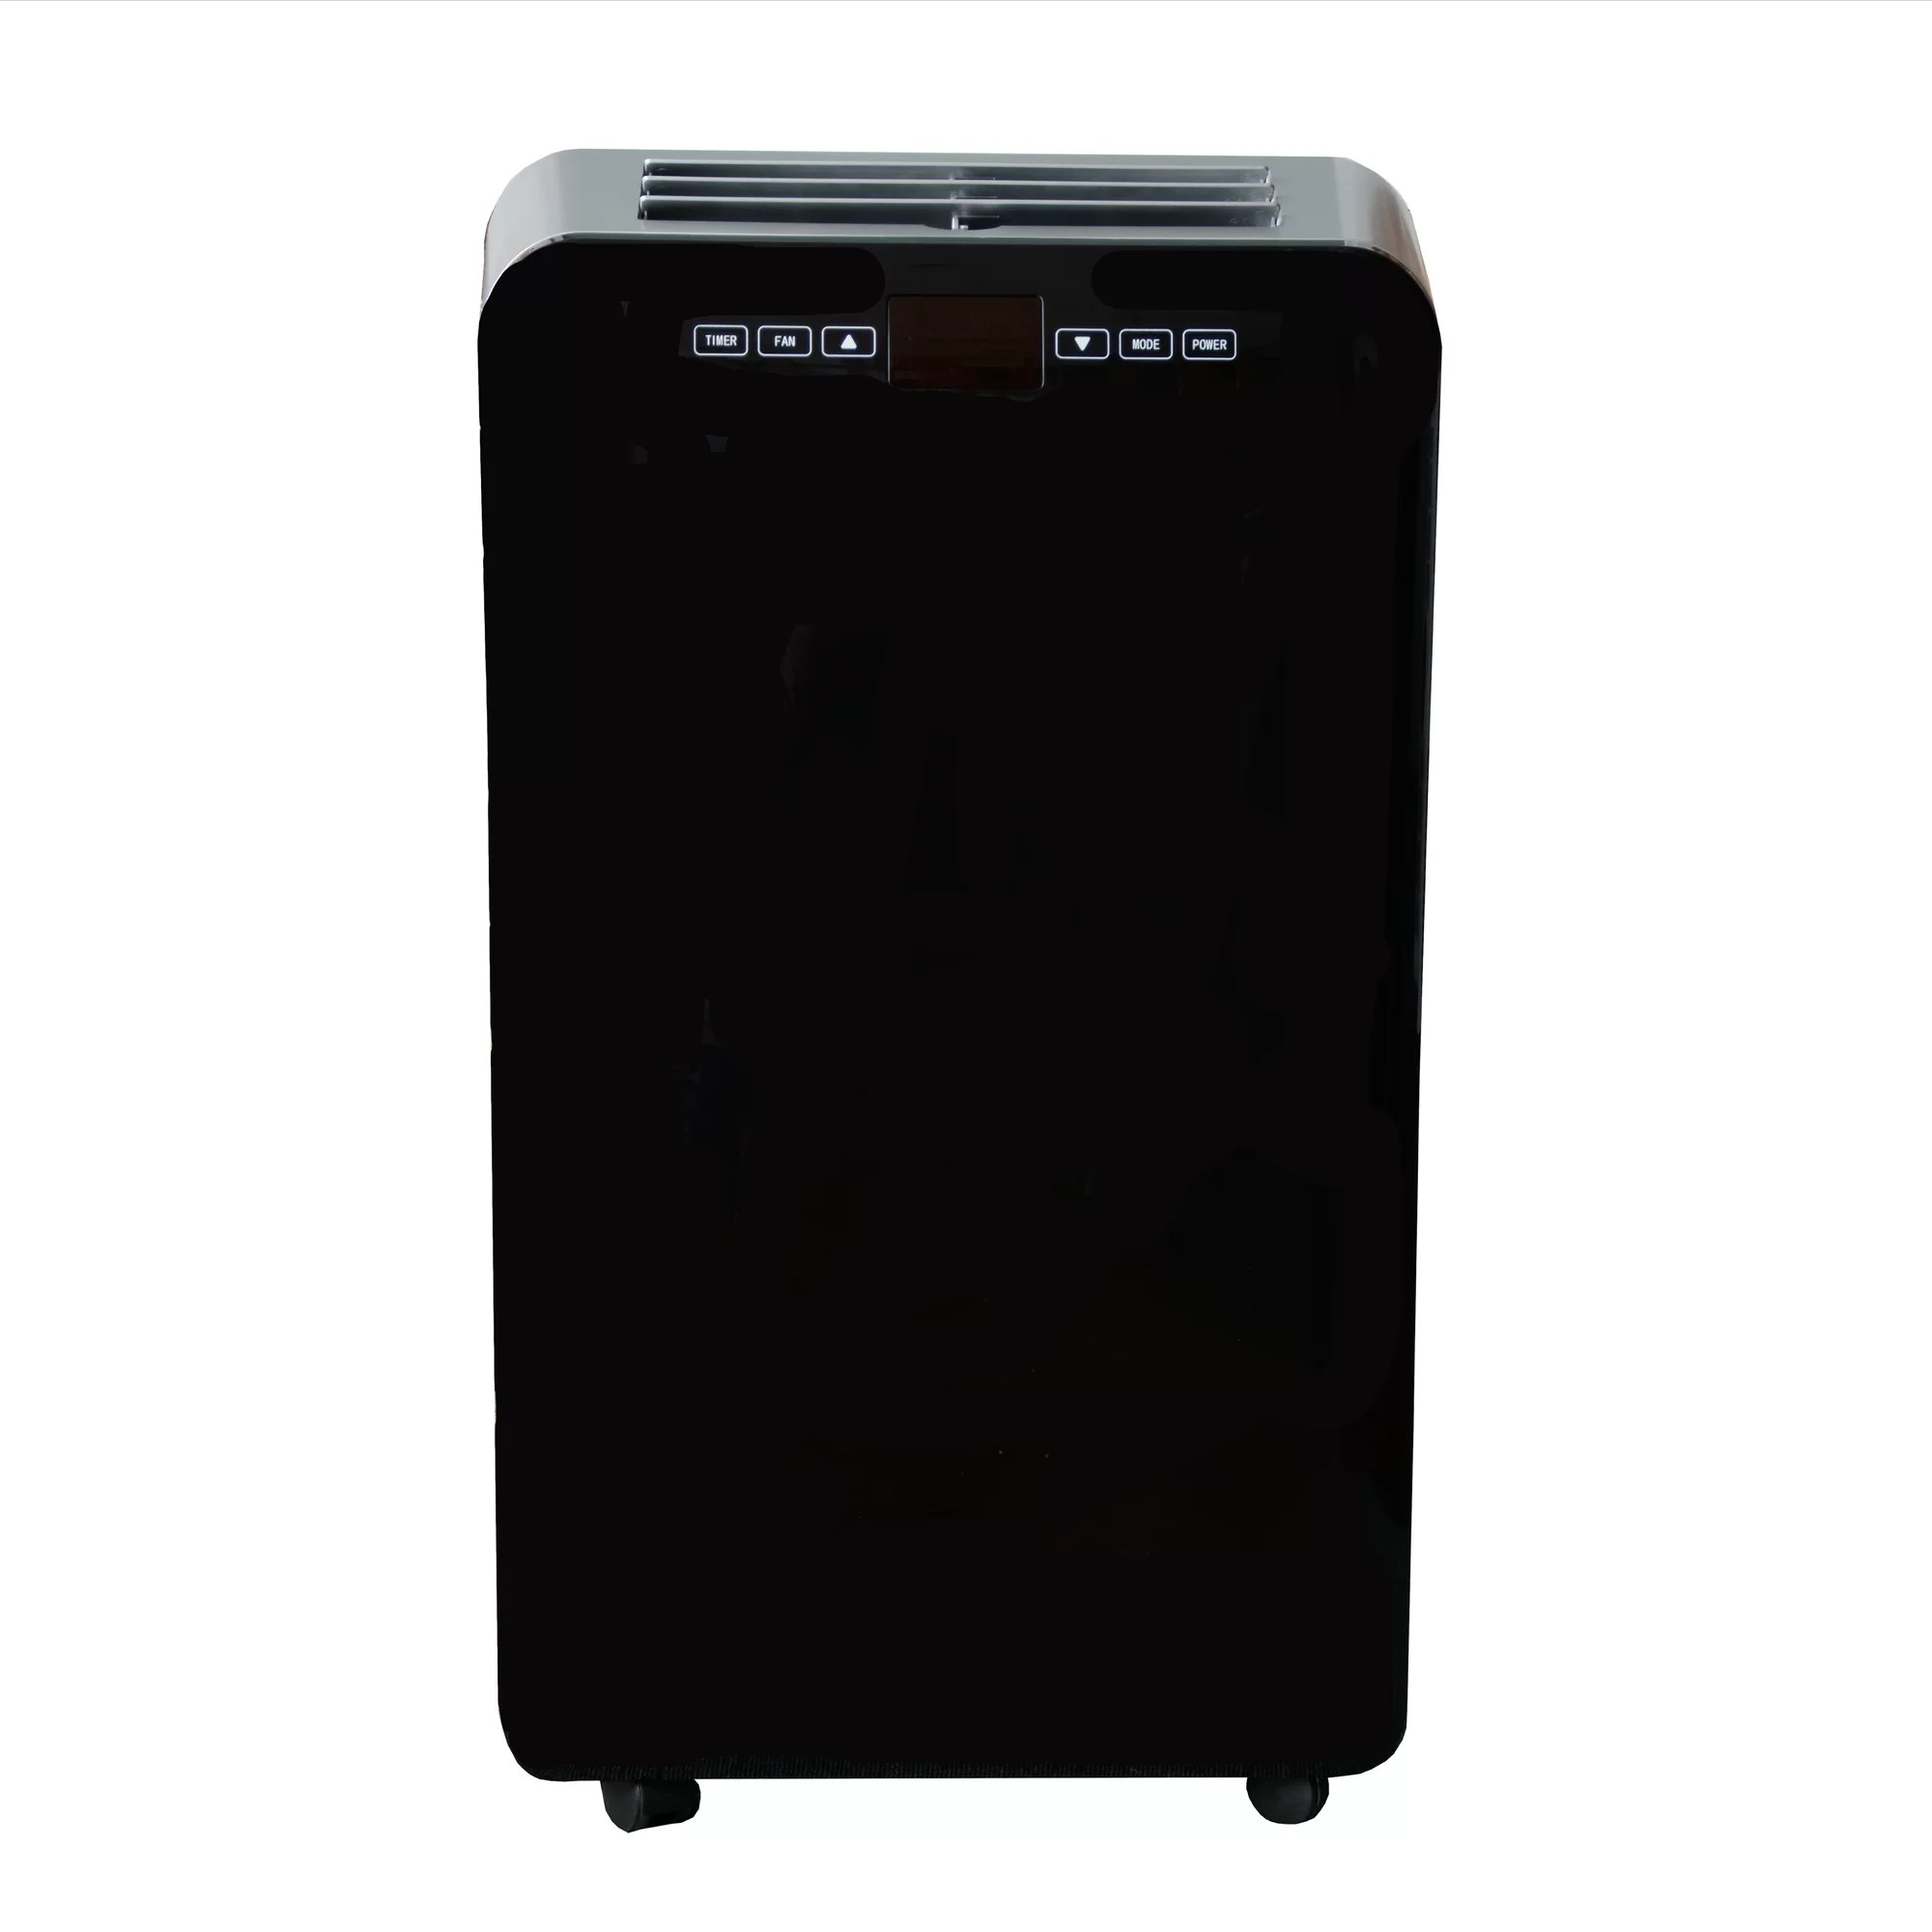 Portable Air Conditioner 12000 Btu Cch Products 12 000 Btu Portable Air Conditioner With